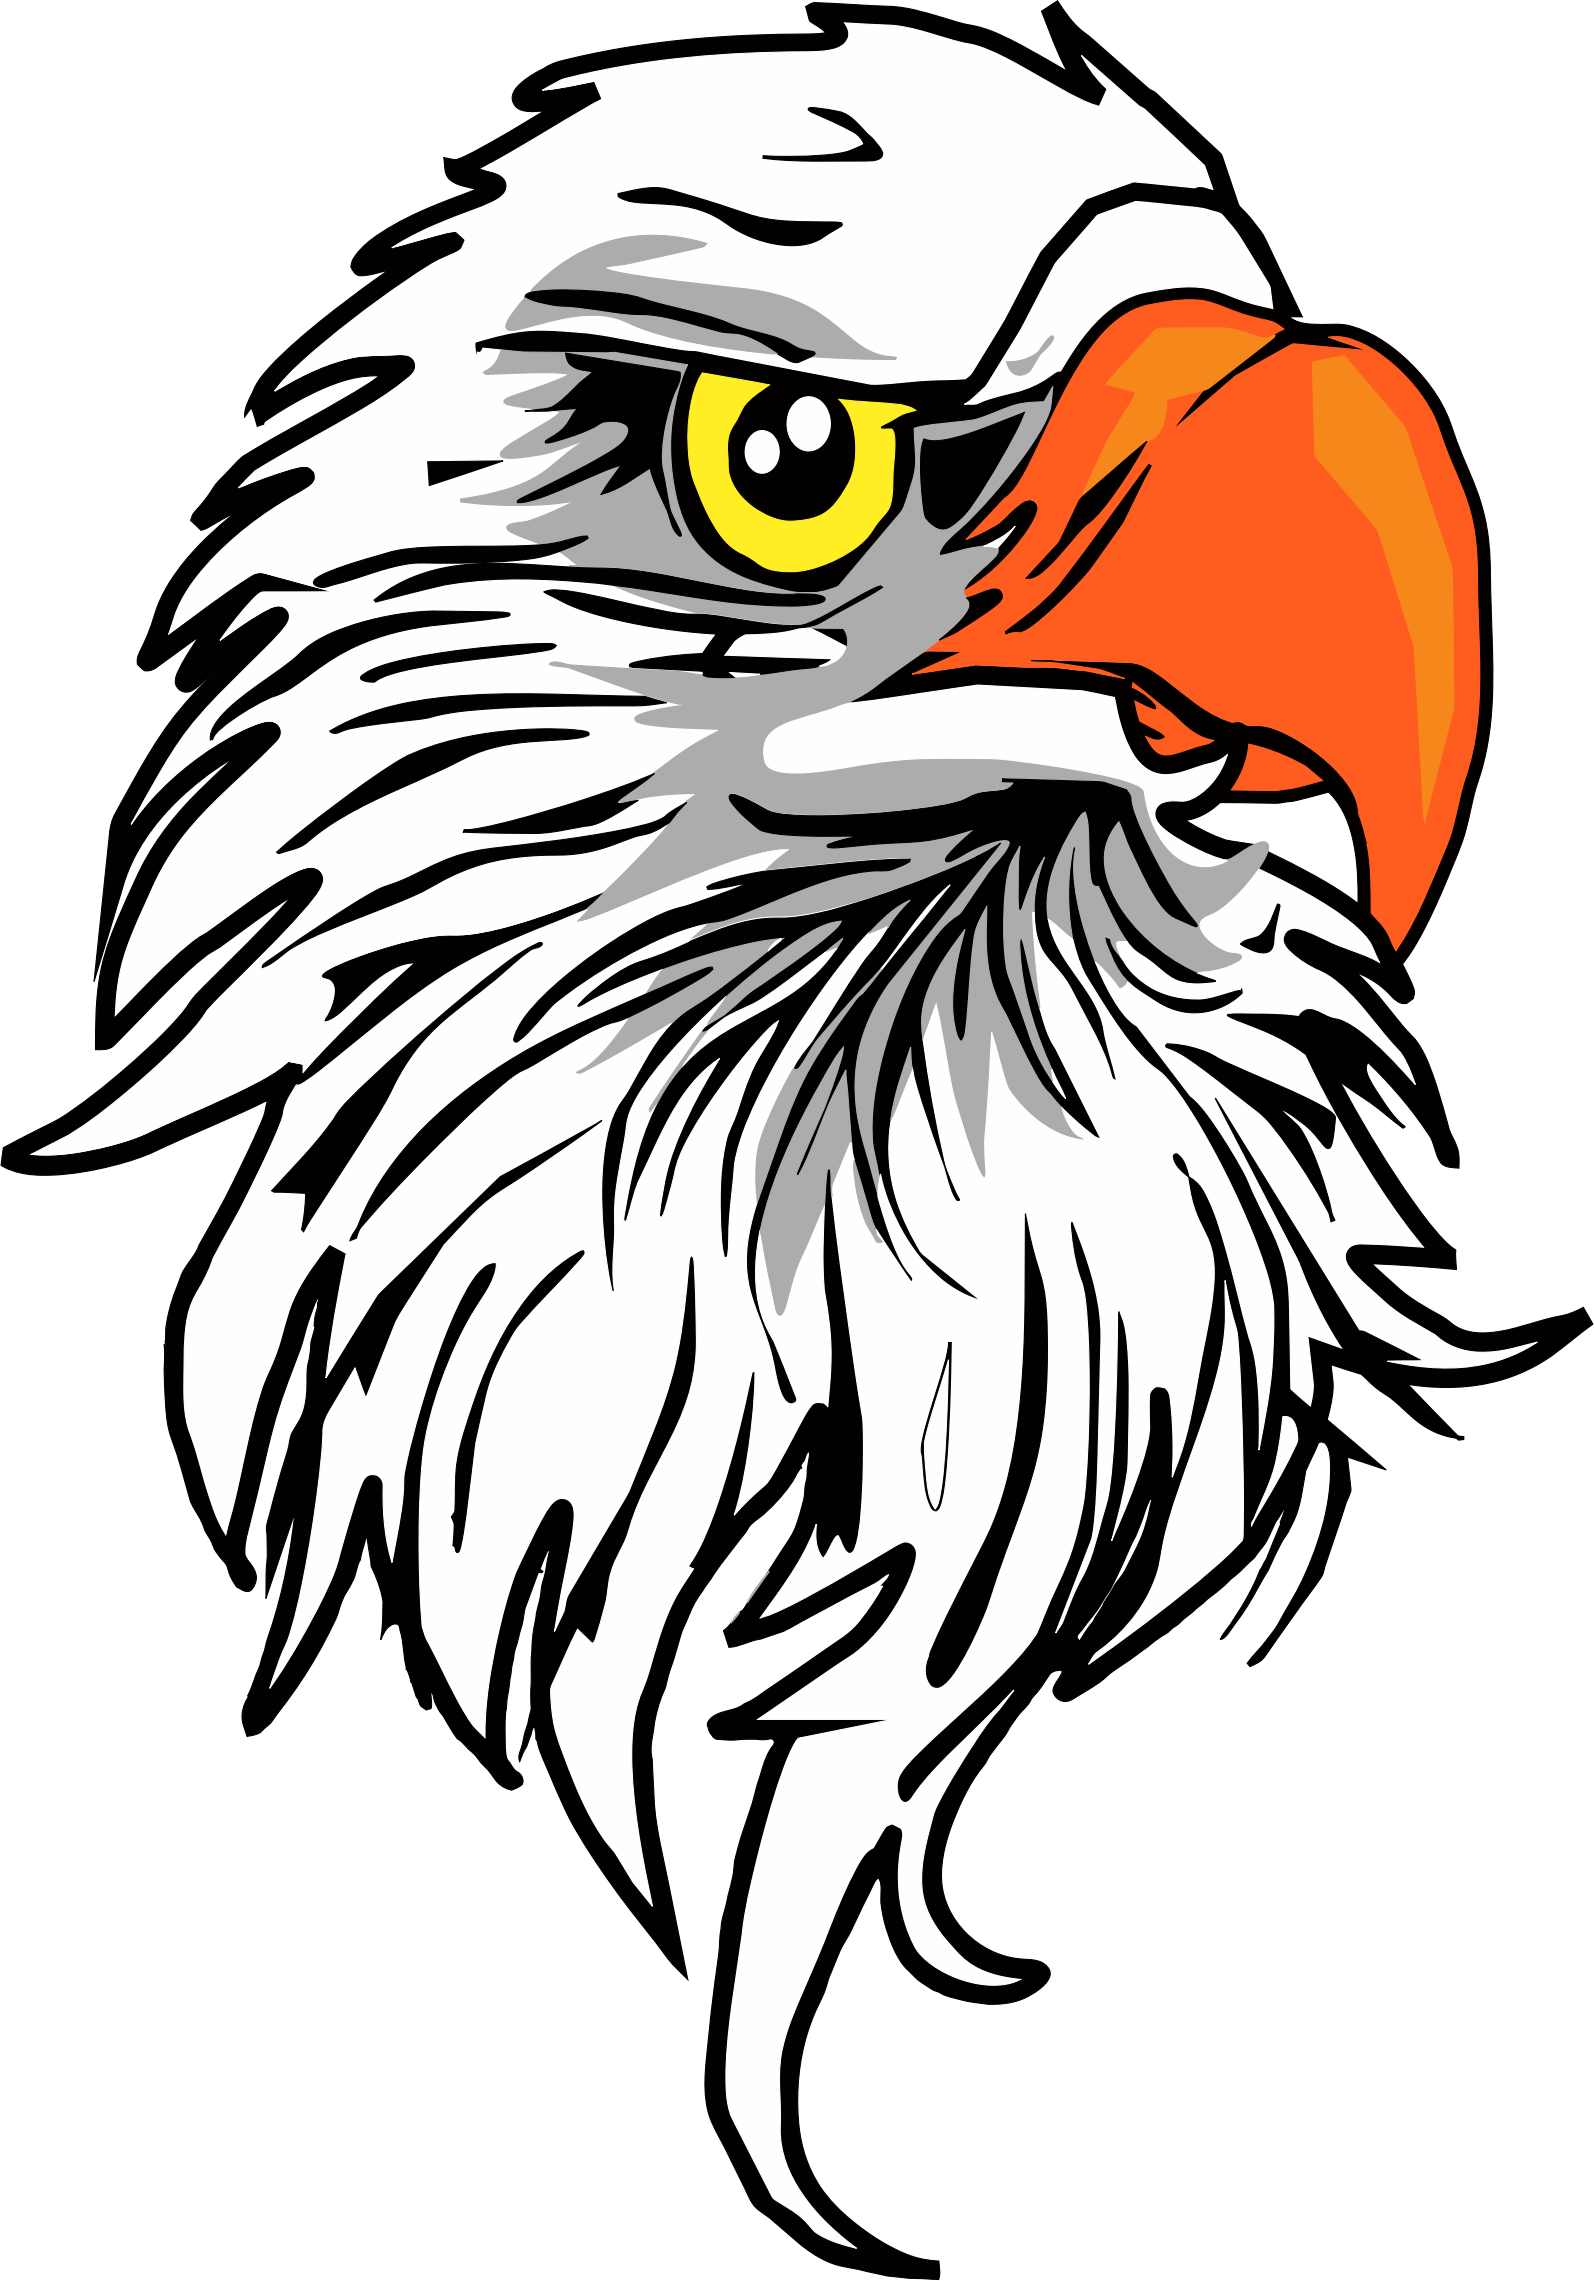 Snake clipart eagle. Images of head vector